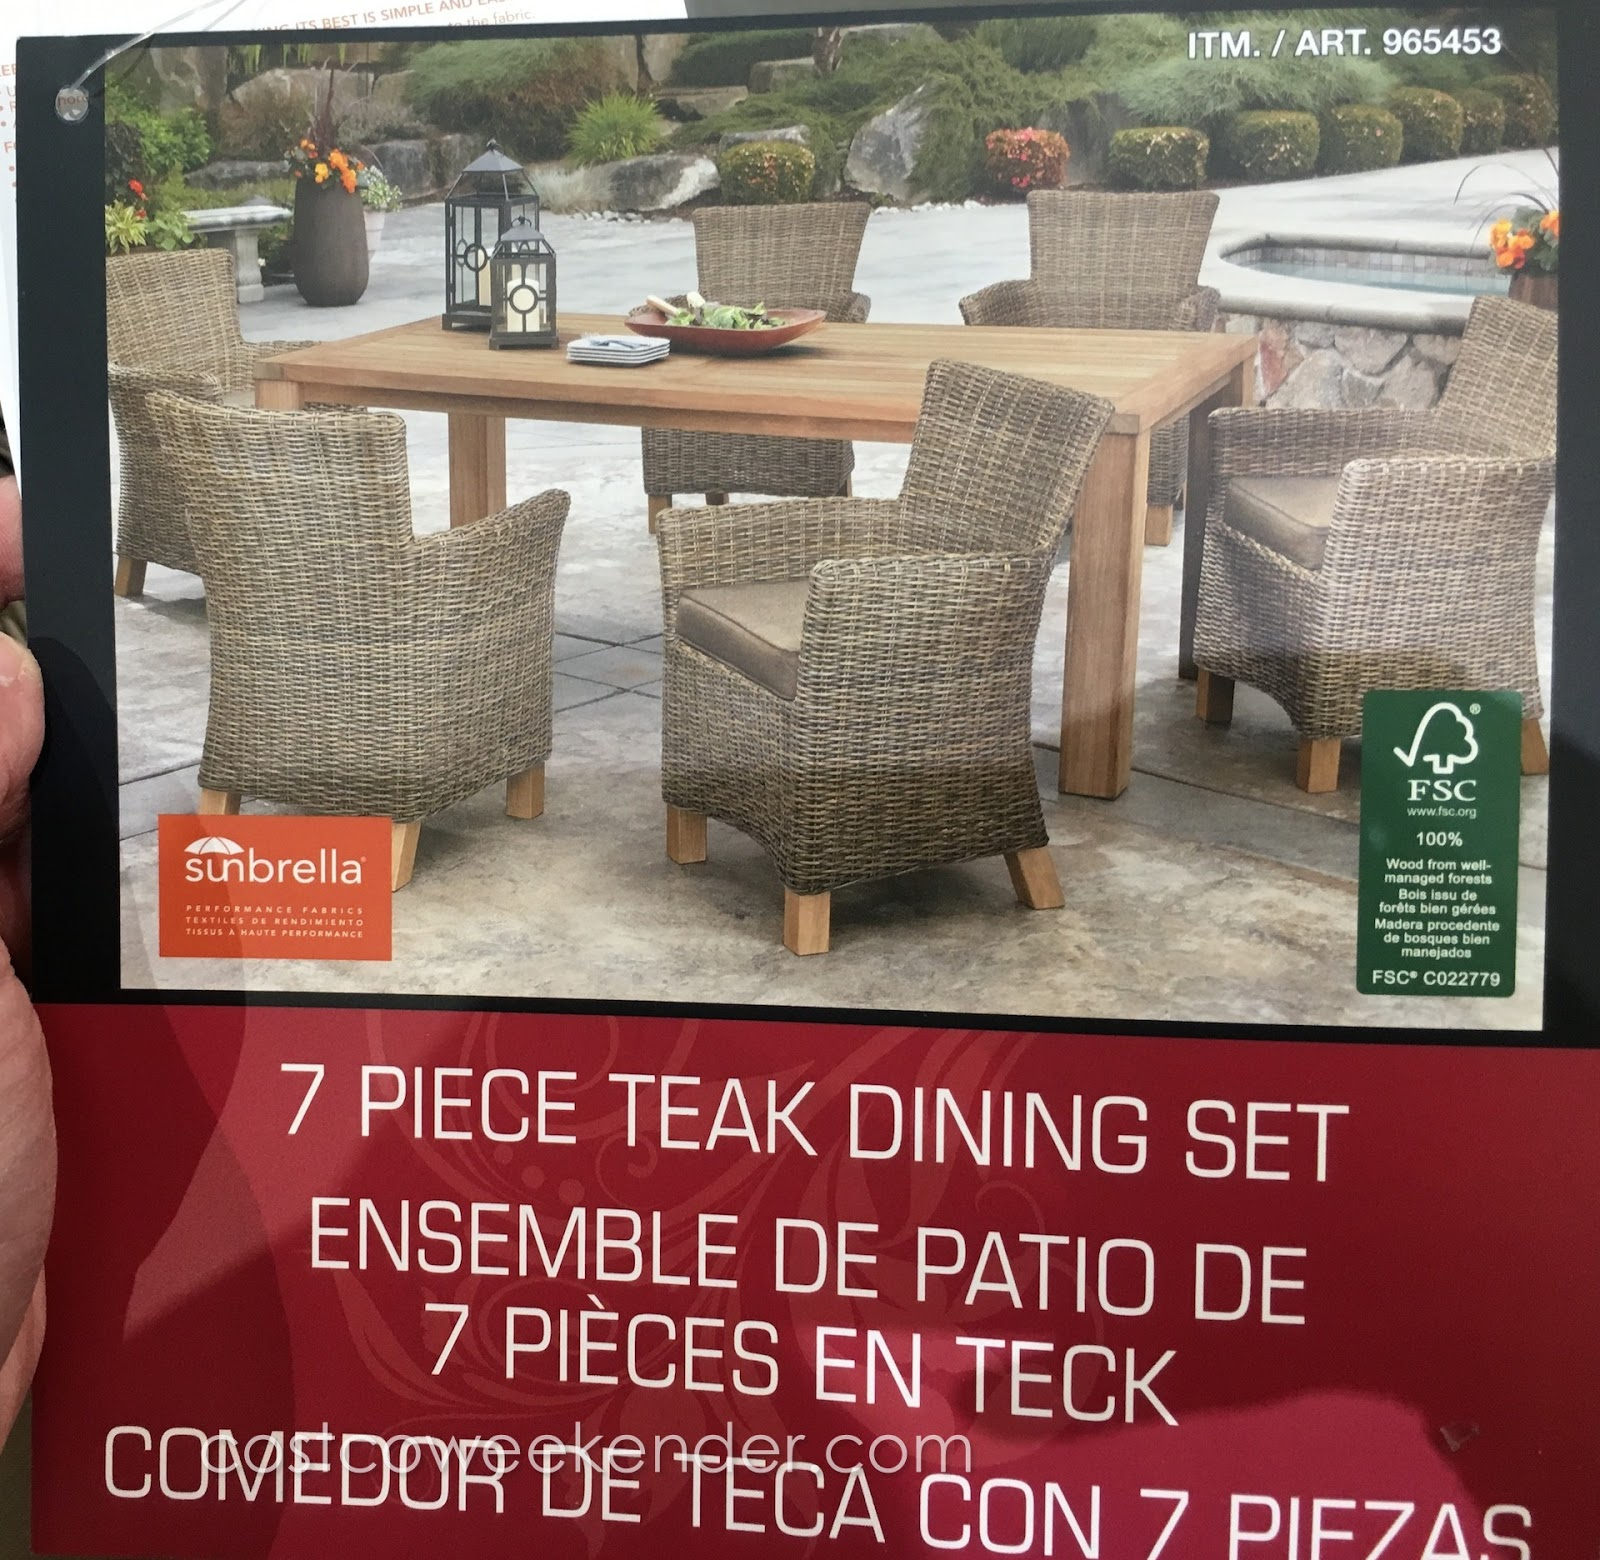 Lounge Around Outside Or Host A Bbq With The Sunbrella 7 Piece Teak Dining  Set